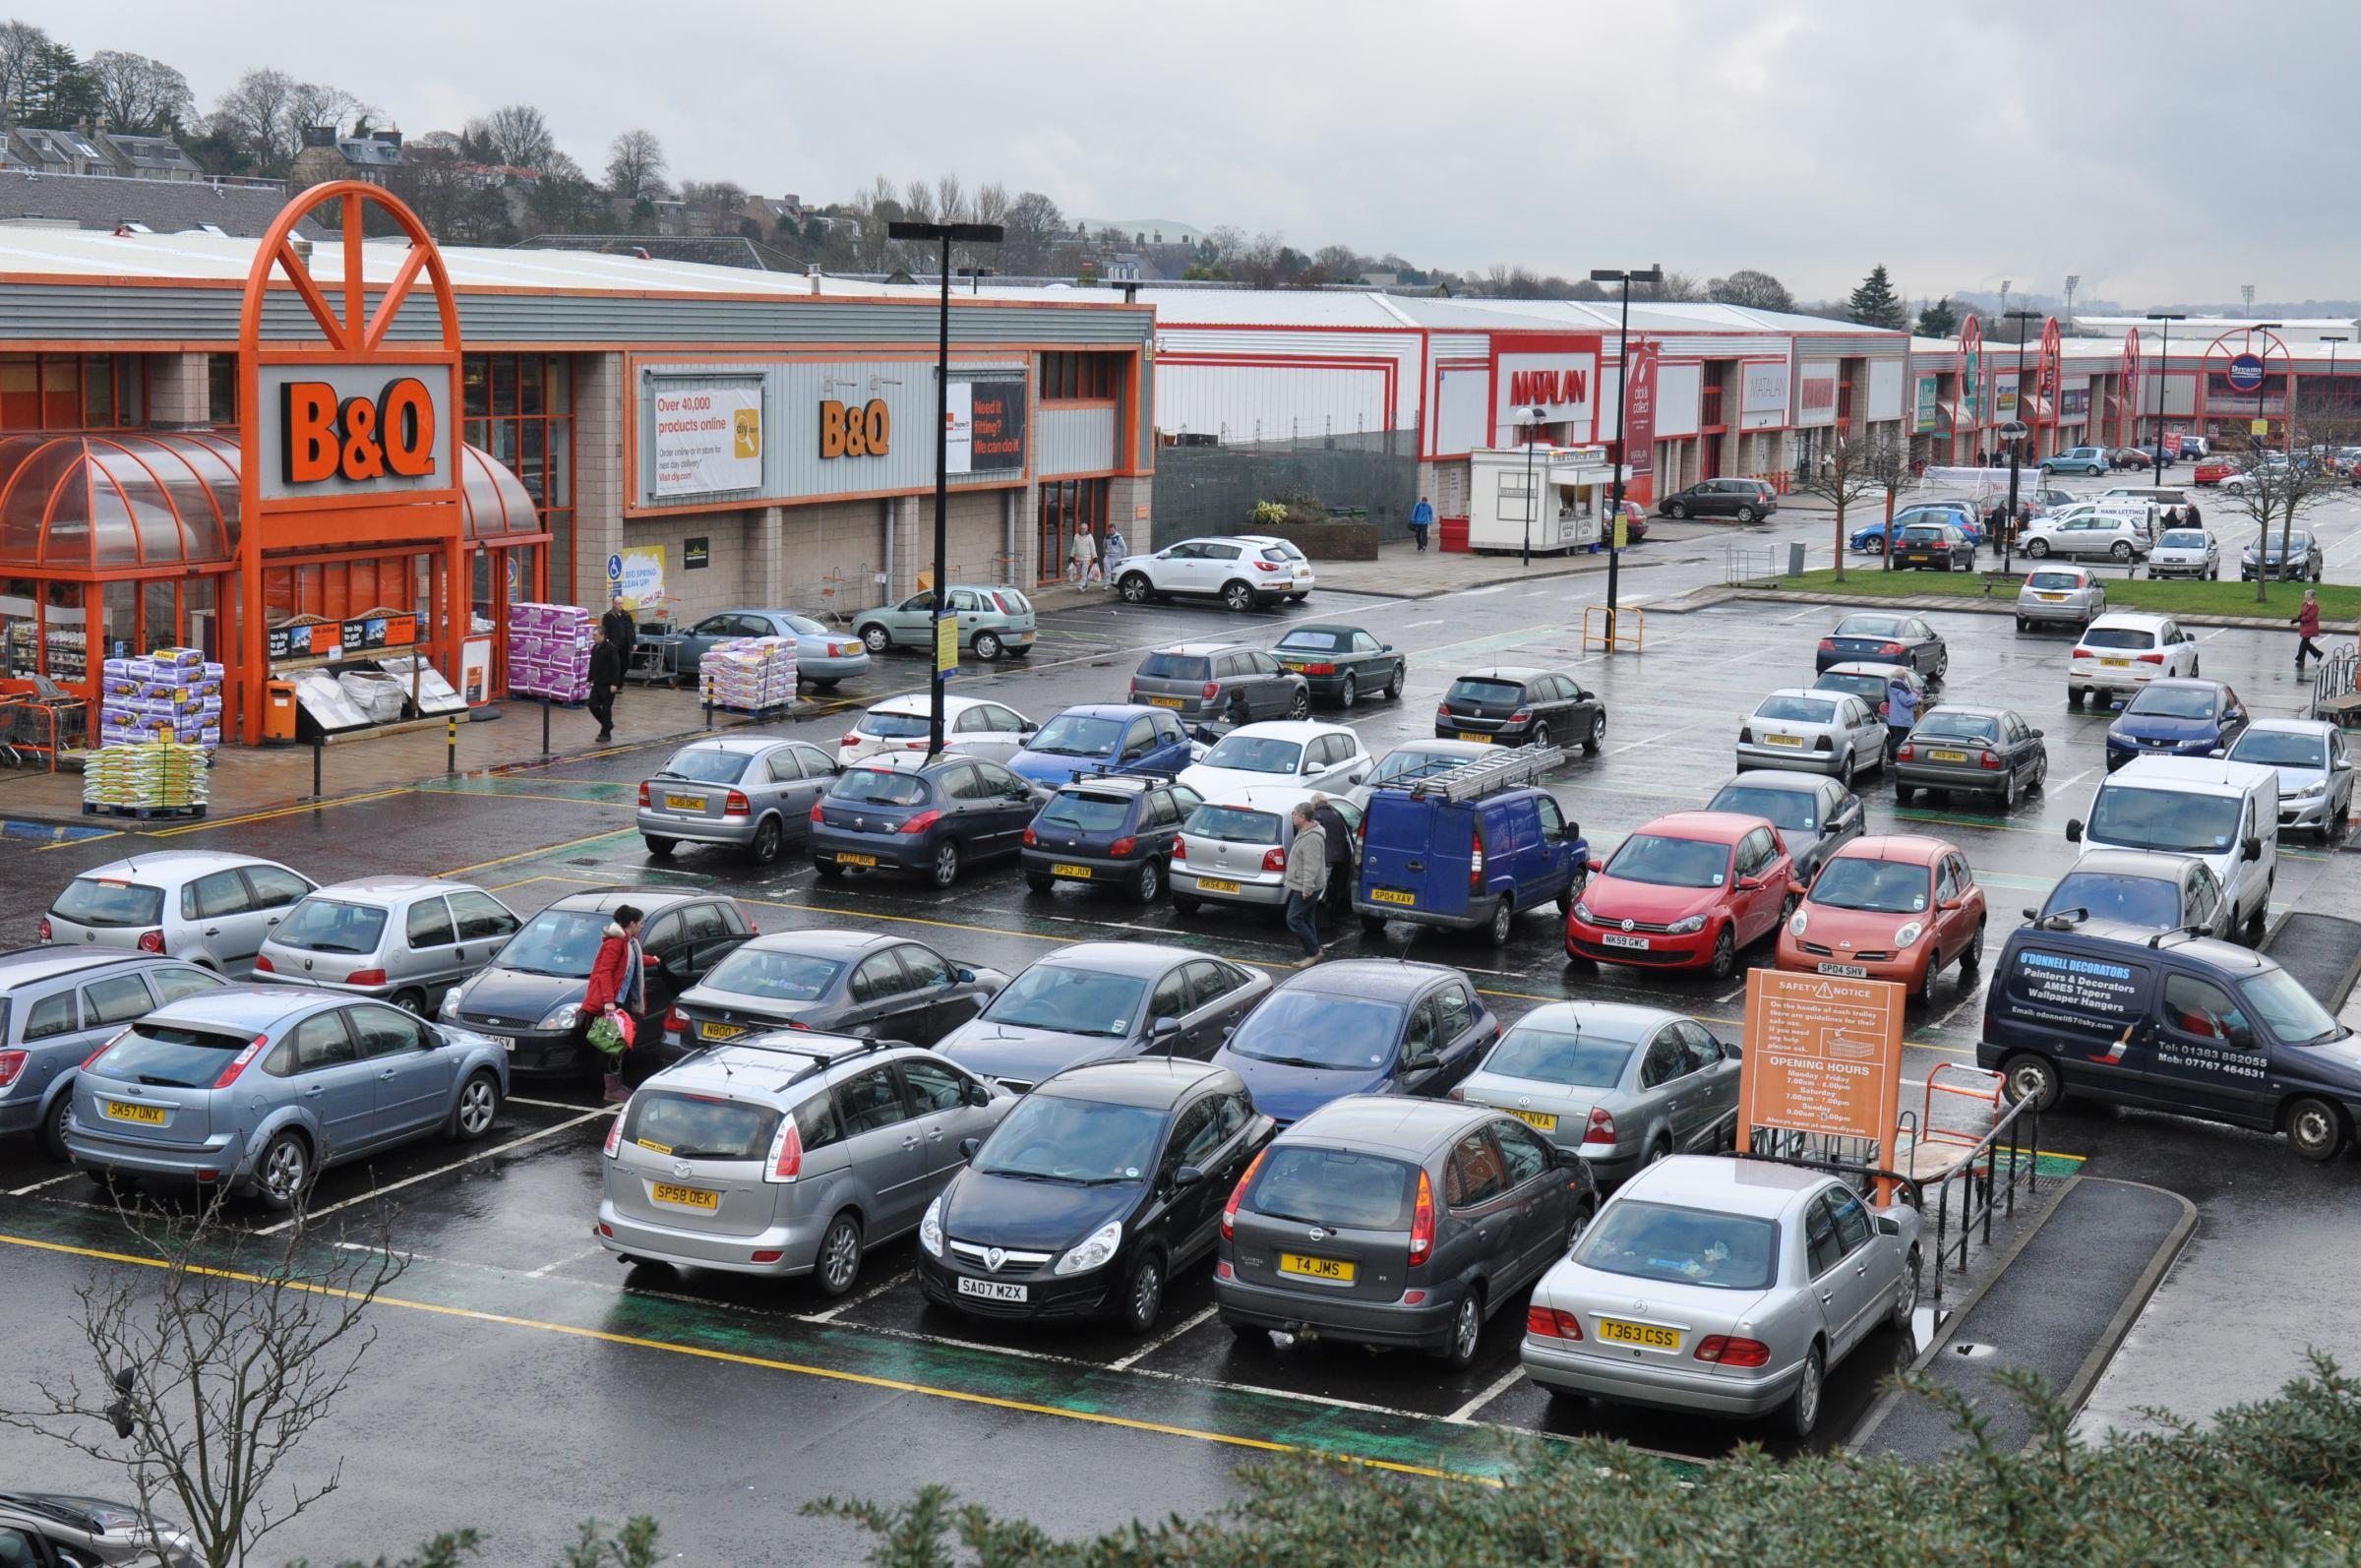 OPINION: Poor driving and ignorance in car park is an 'accident waiting to happen'